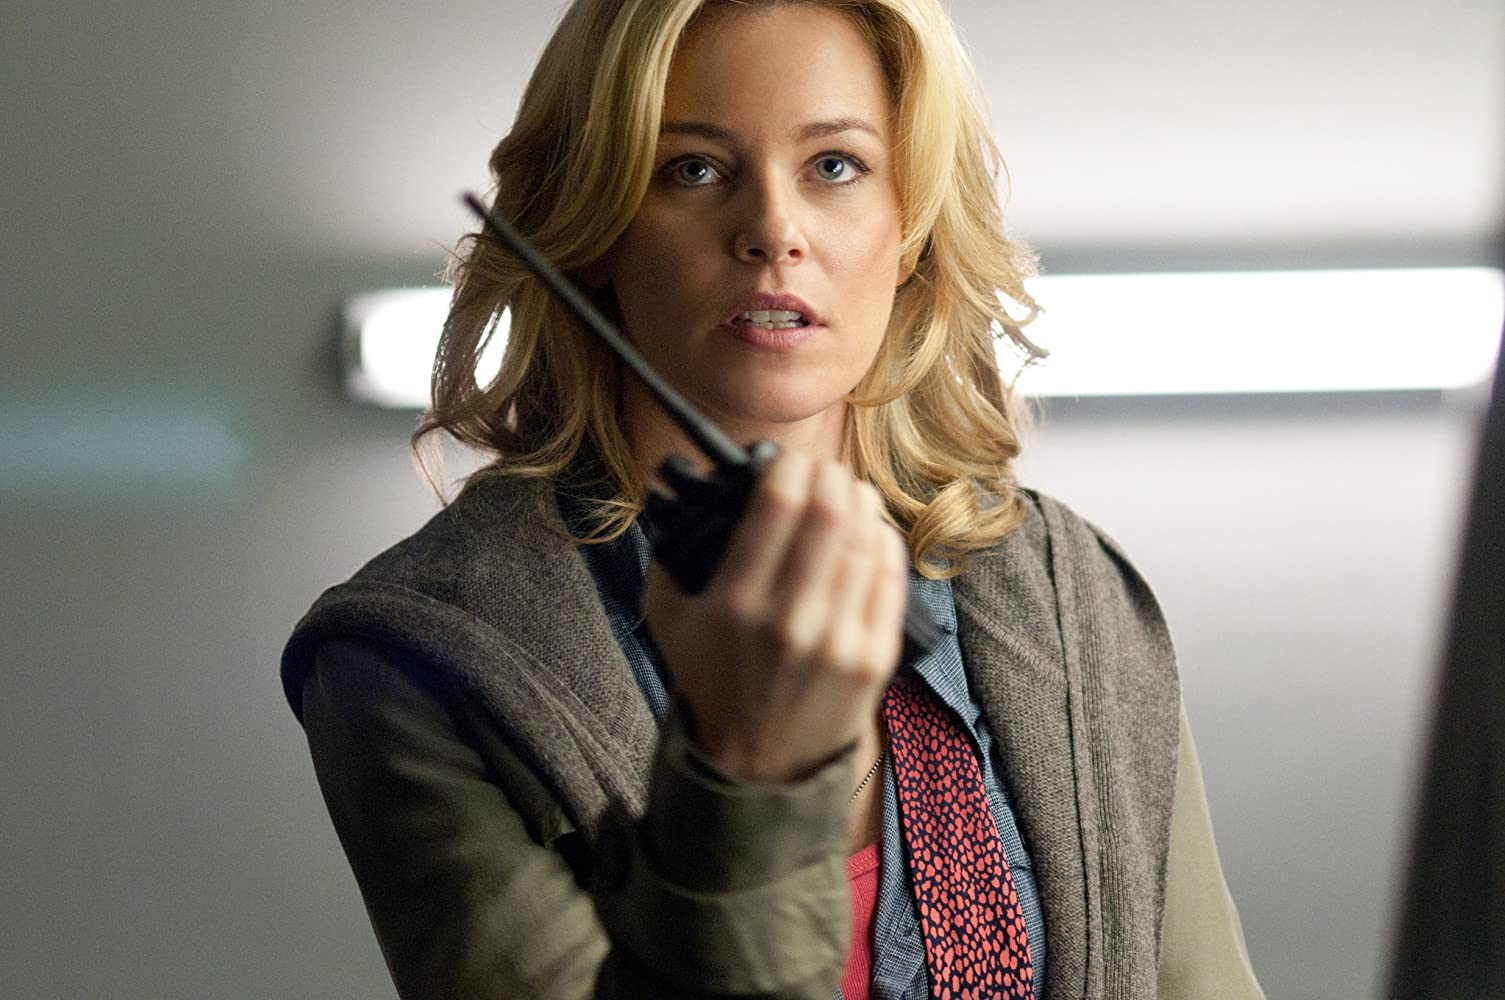 Elizabeth Banks in Man on a Ledge (2012)